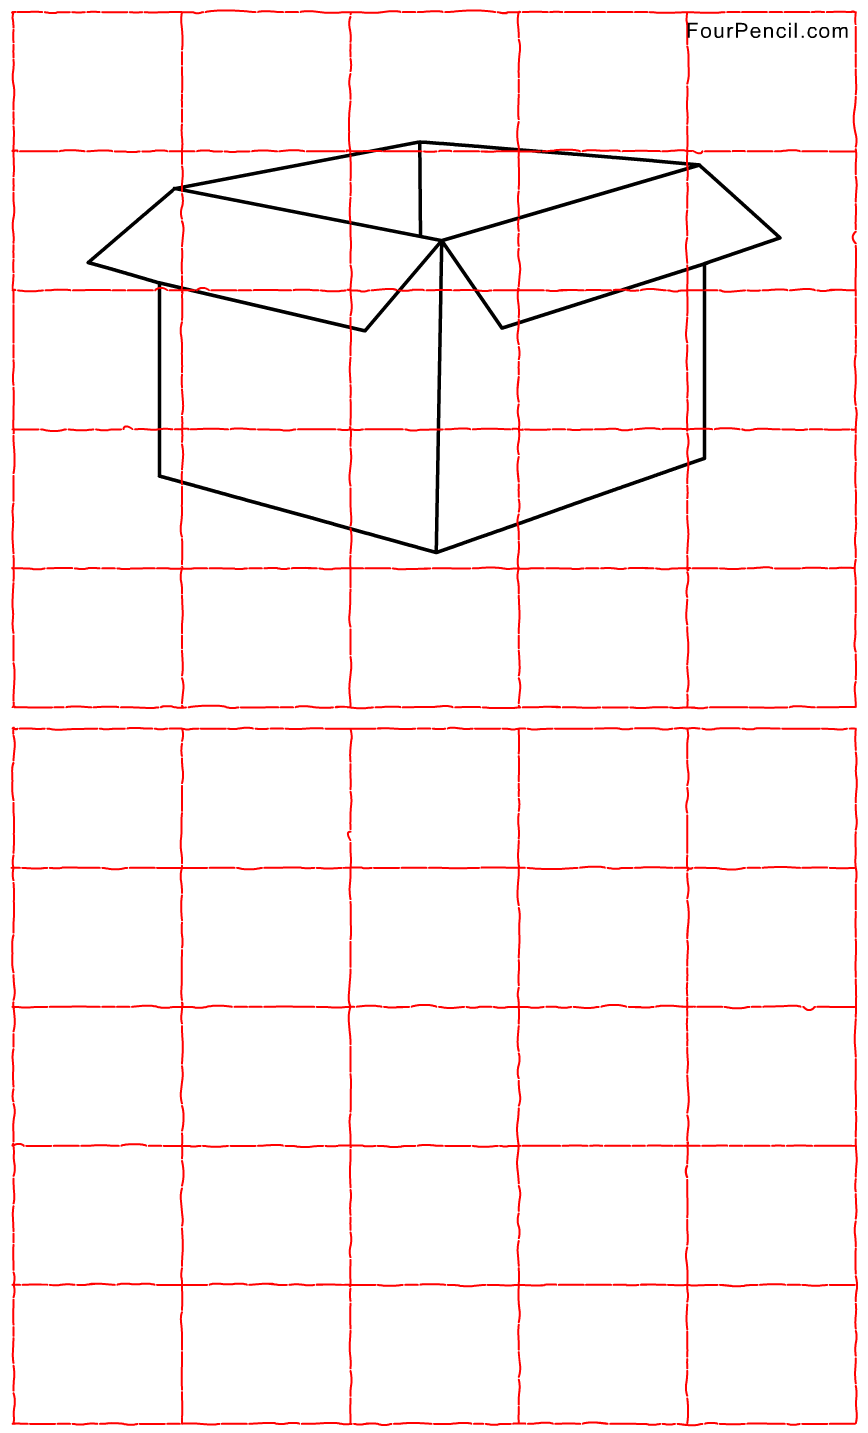 Grid Drawing Worksheets Pdf At Getdrawings Free For Personal